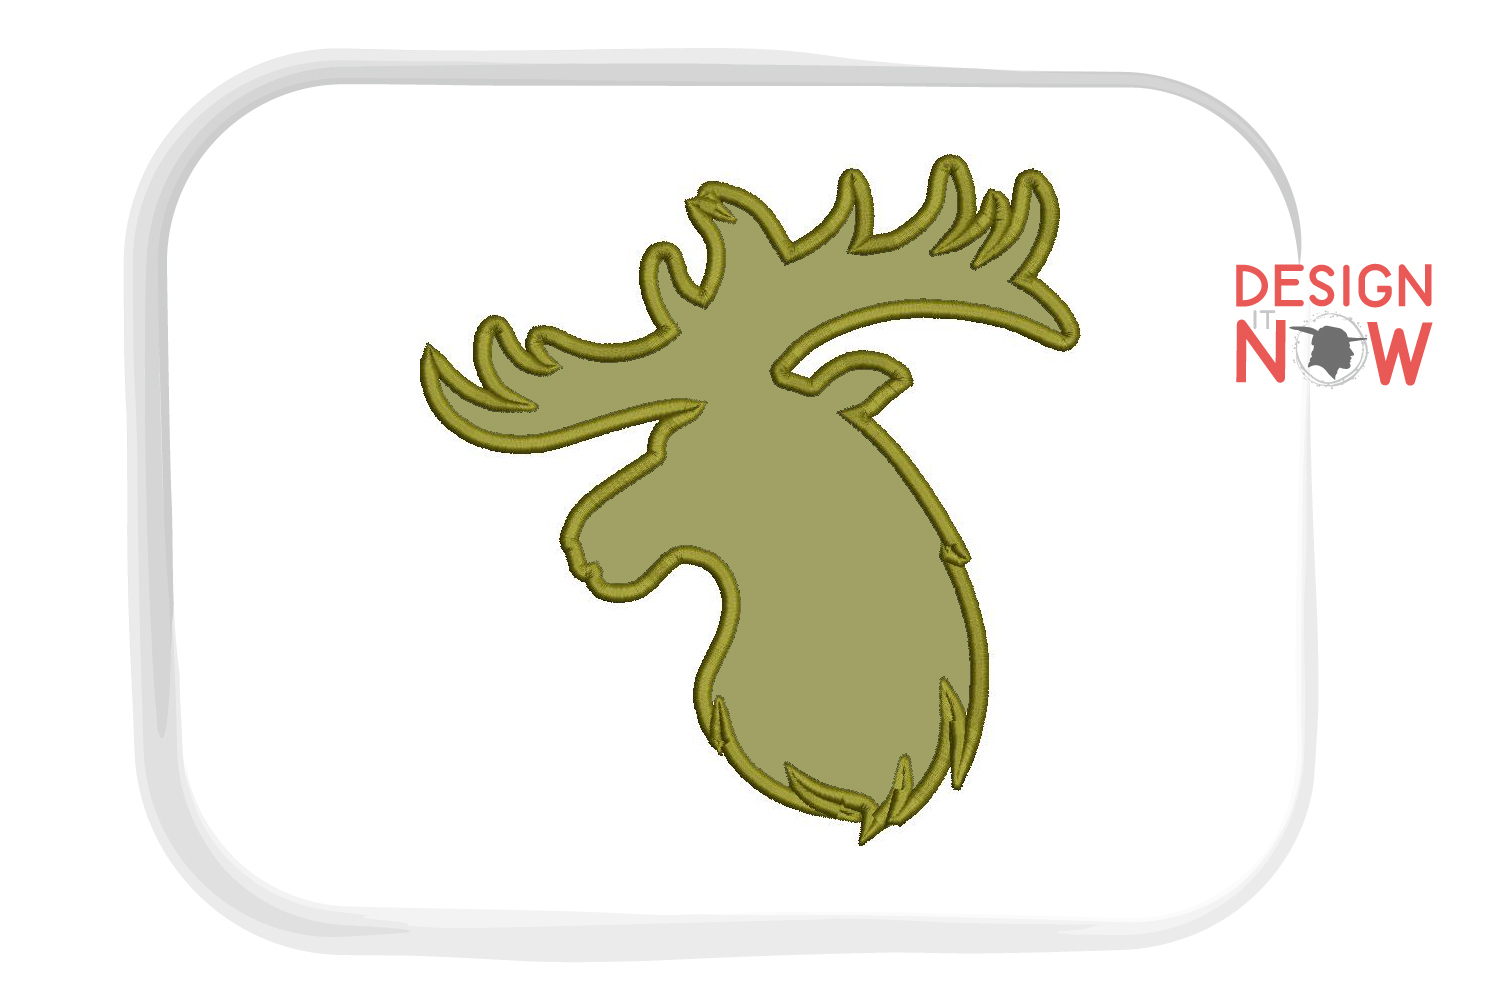 Deer Applique Embroidery Design, Wild Embroidery Art example image 3